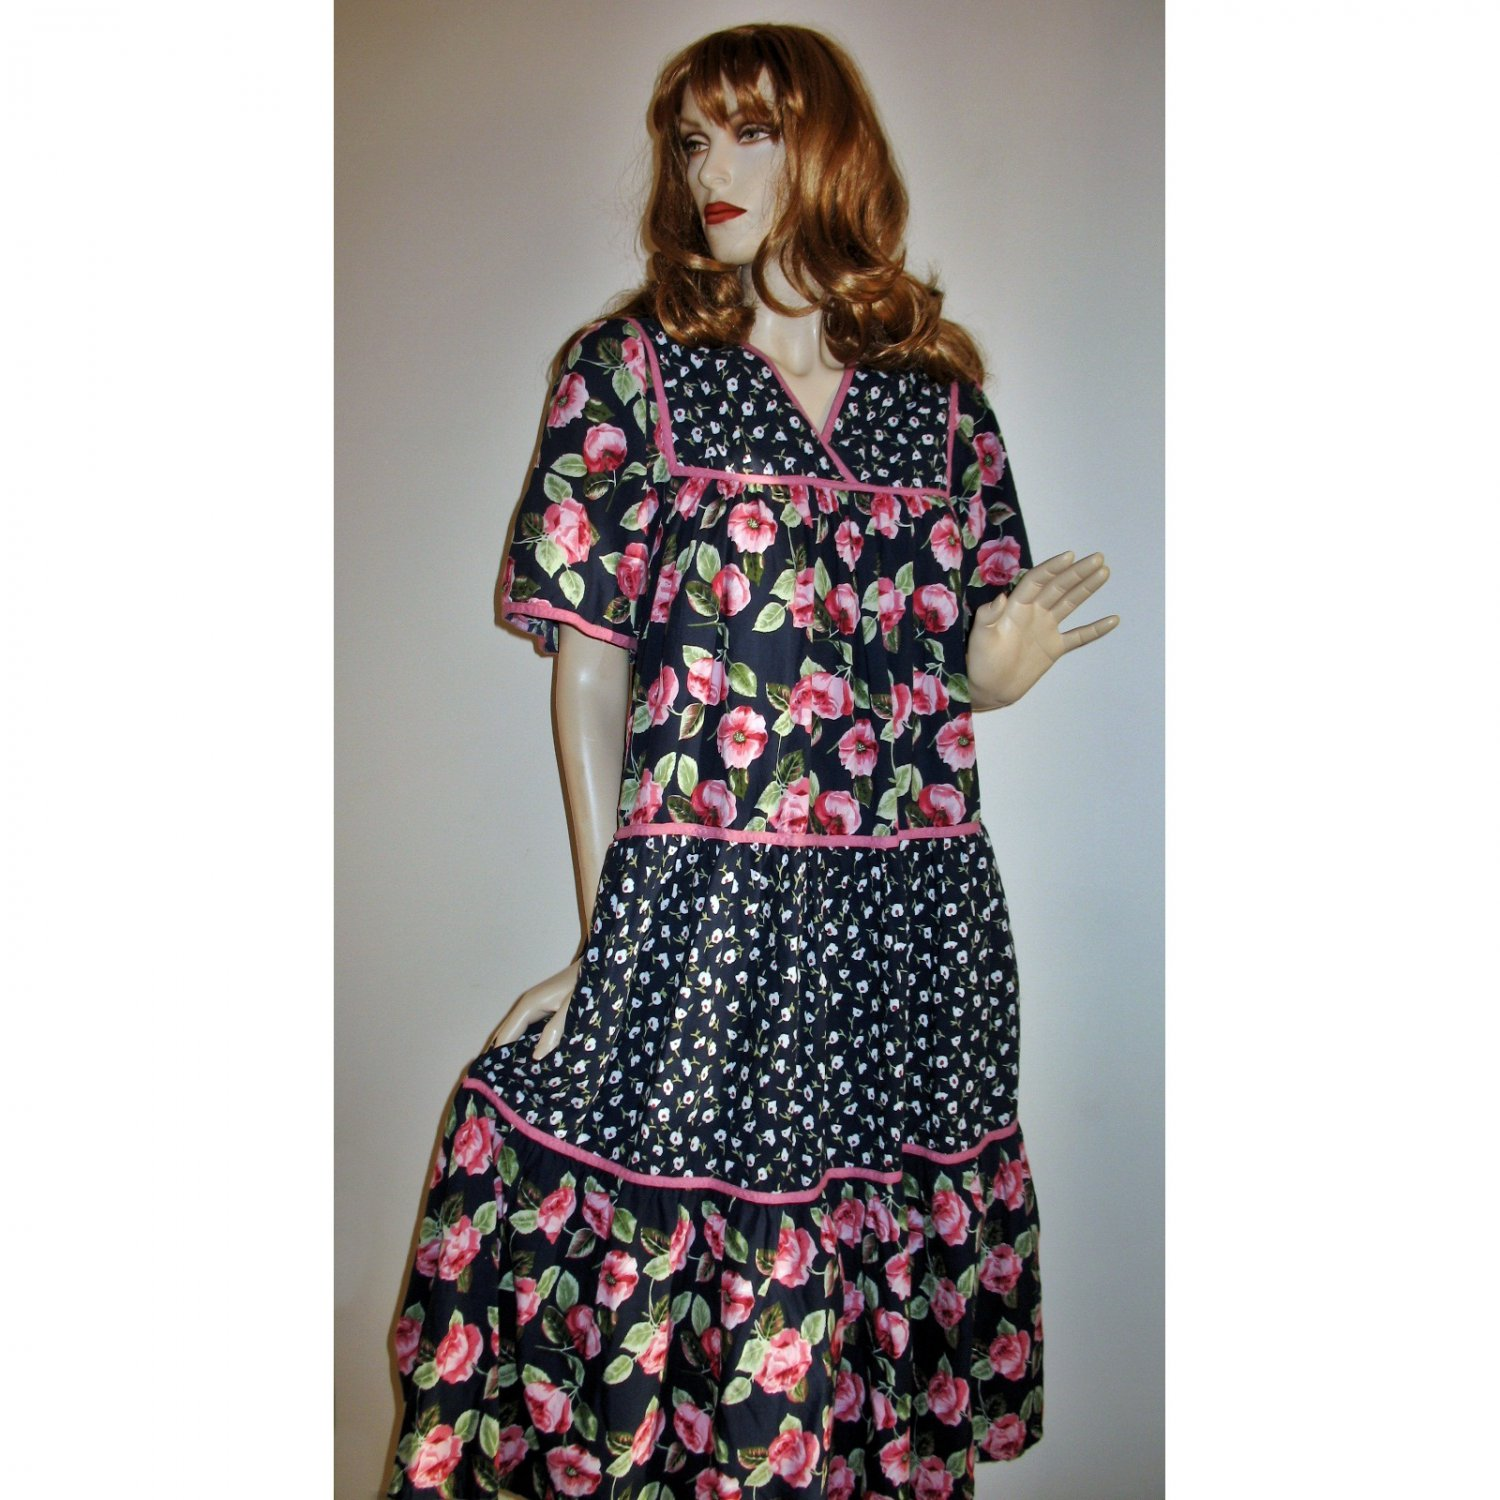 60s Hippie Boho Tent Dress/Deep Wide Flounces/Pink Roses & Ditsy Florals - One Size